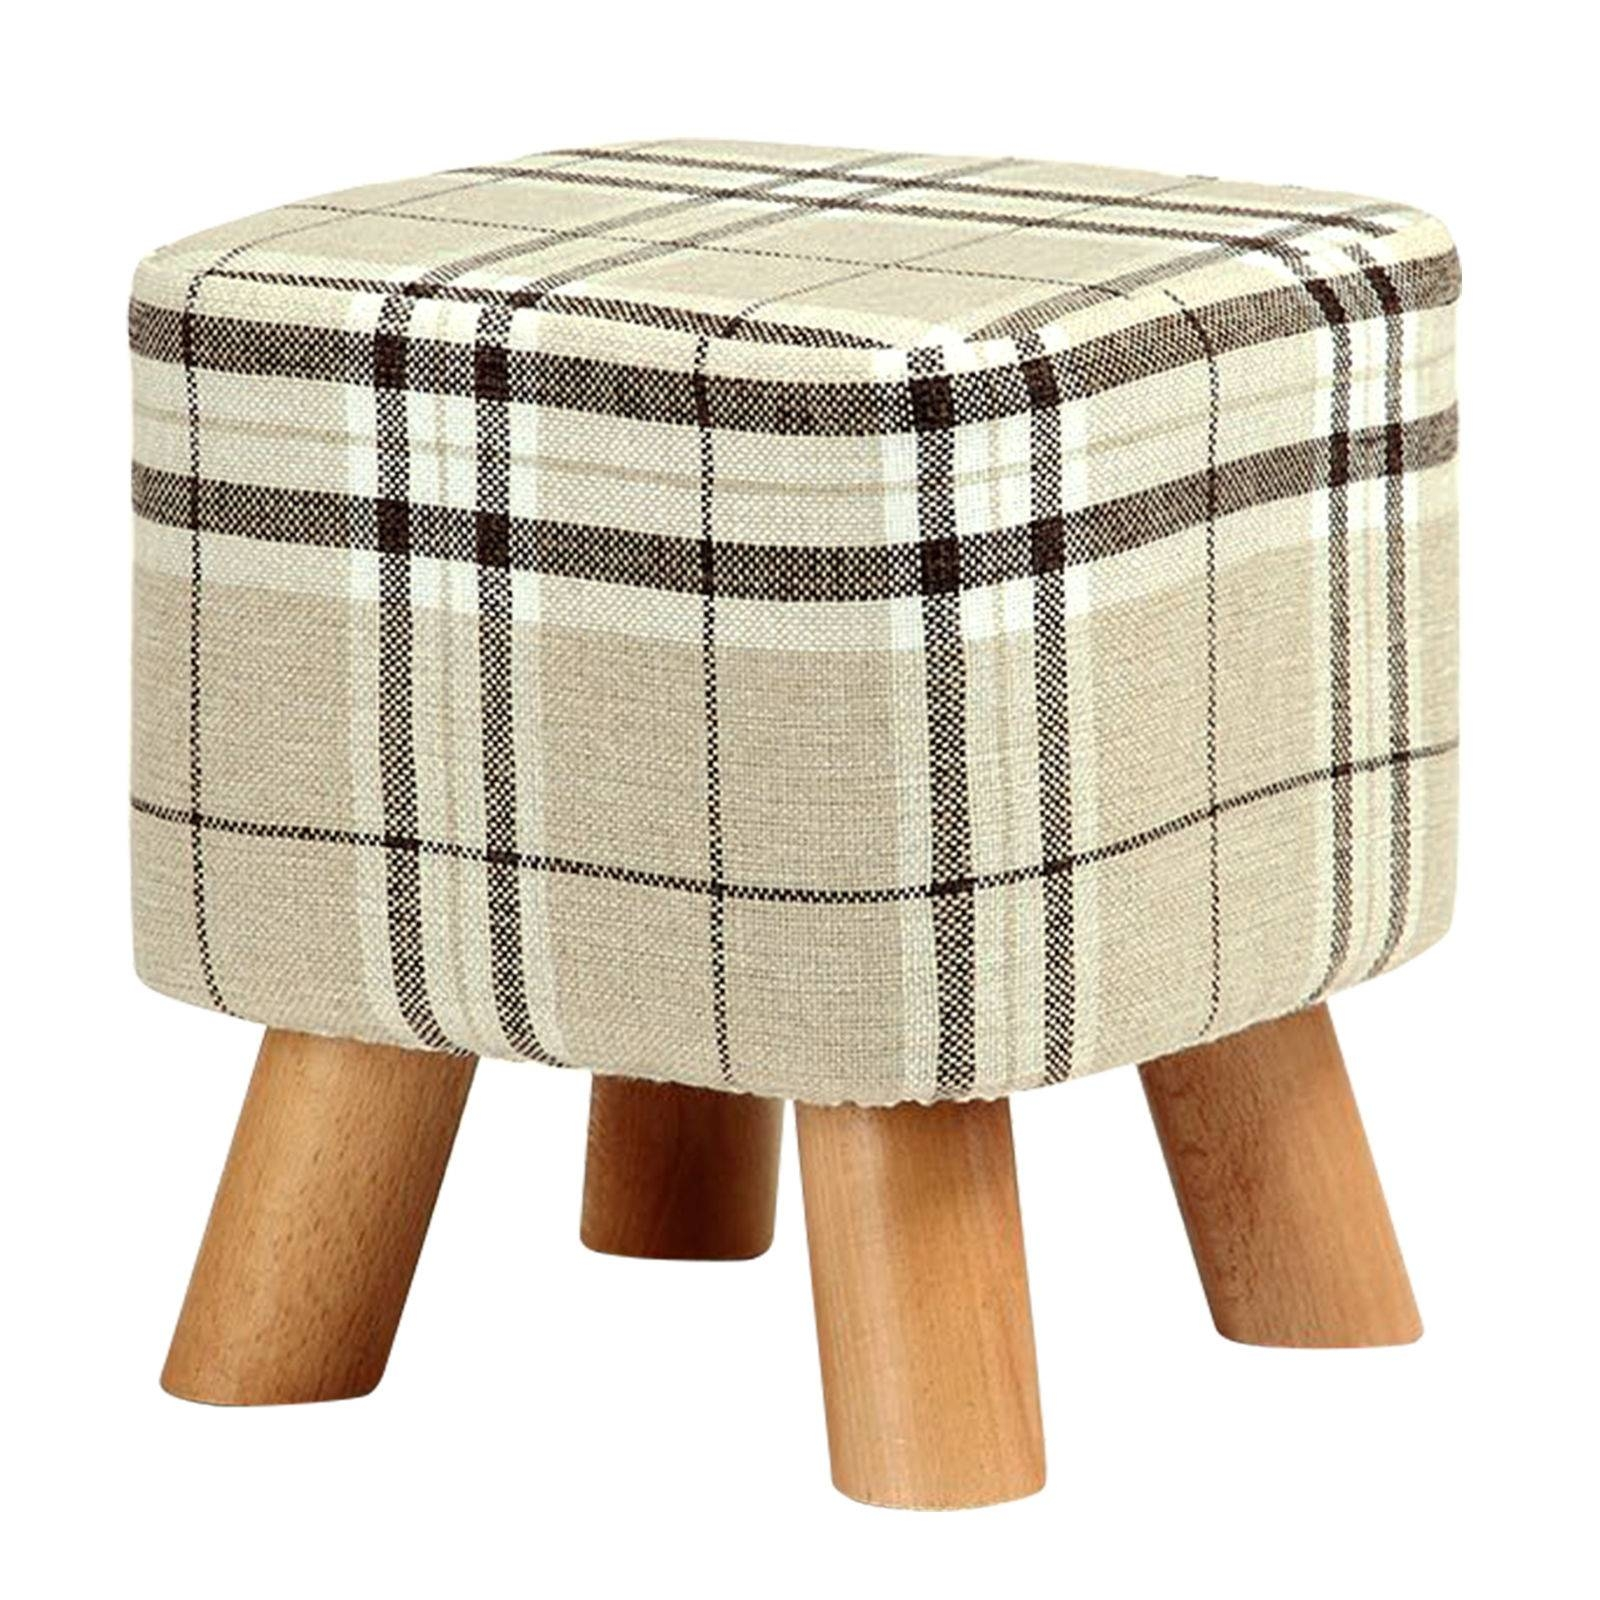 Popular Wood Footstools-Buy Cheap Wood Footstools Lots From China with regard to Fabric Footstools (Image 27 of 30)